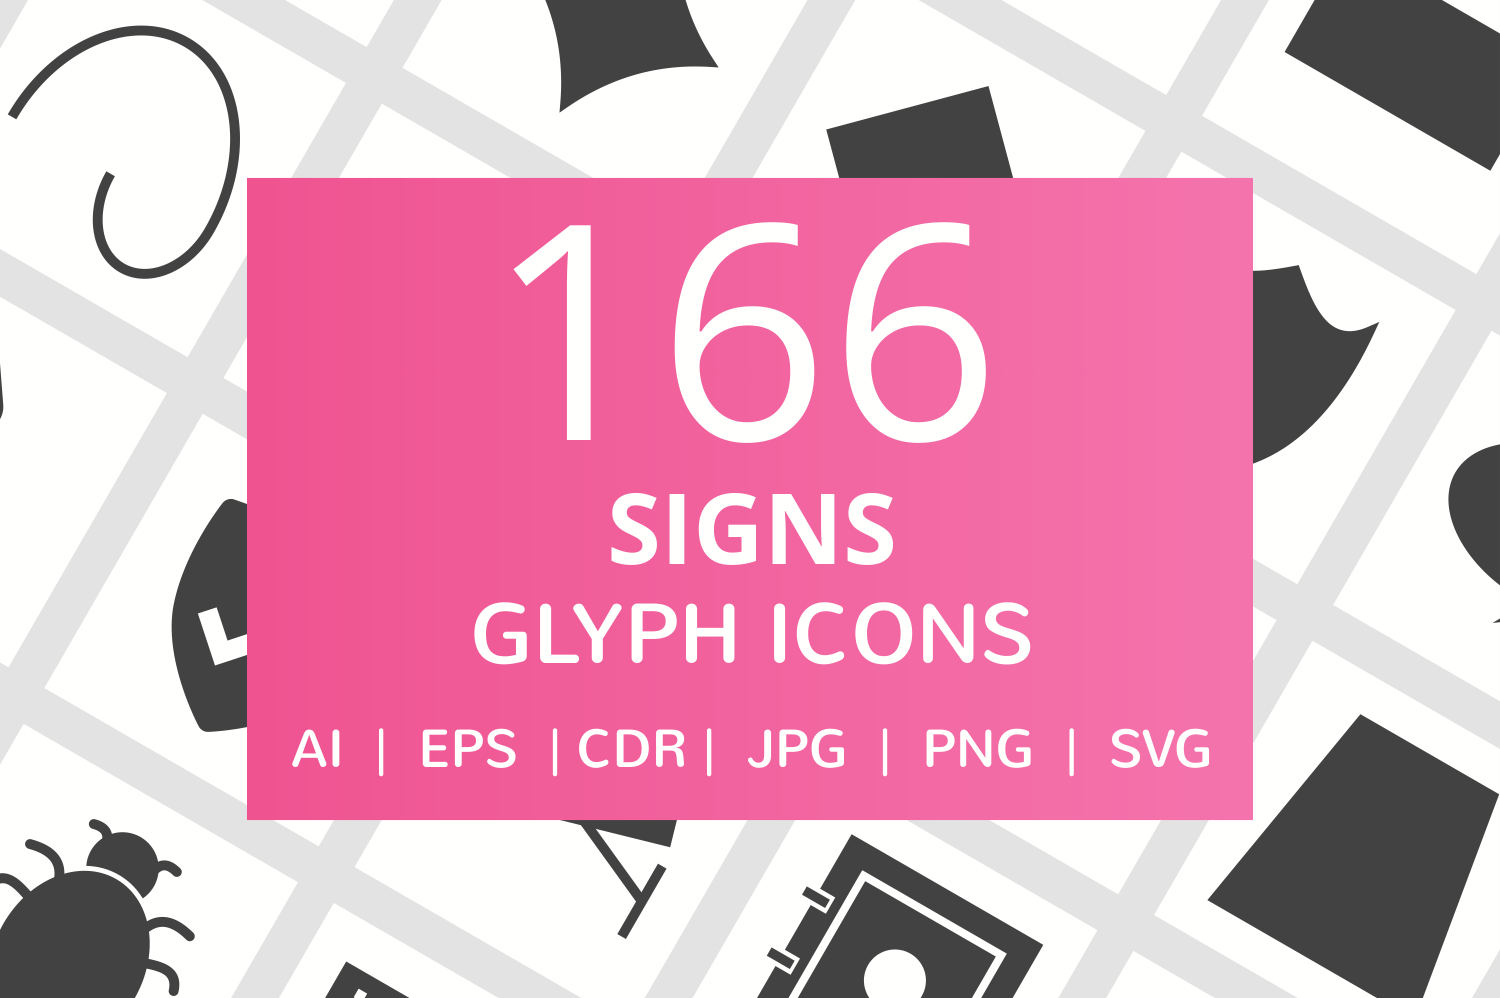 166 Sign Glyph Icons example image 1